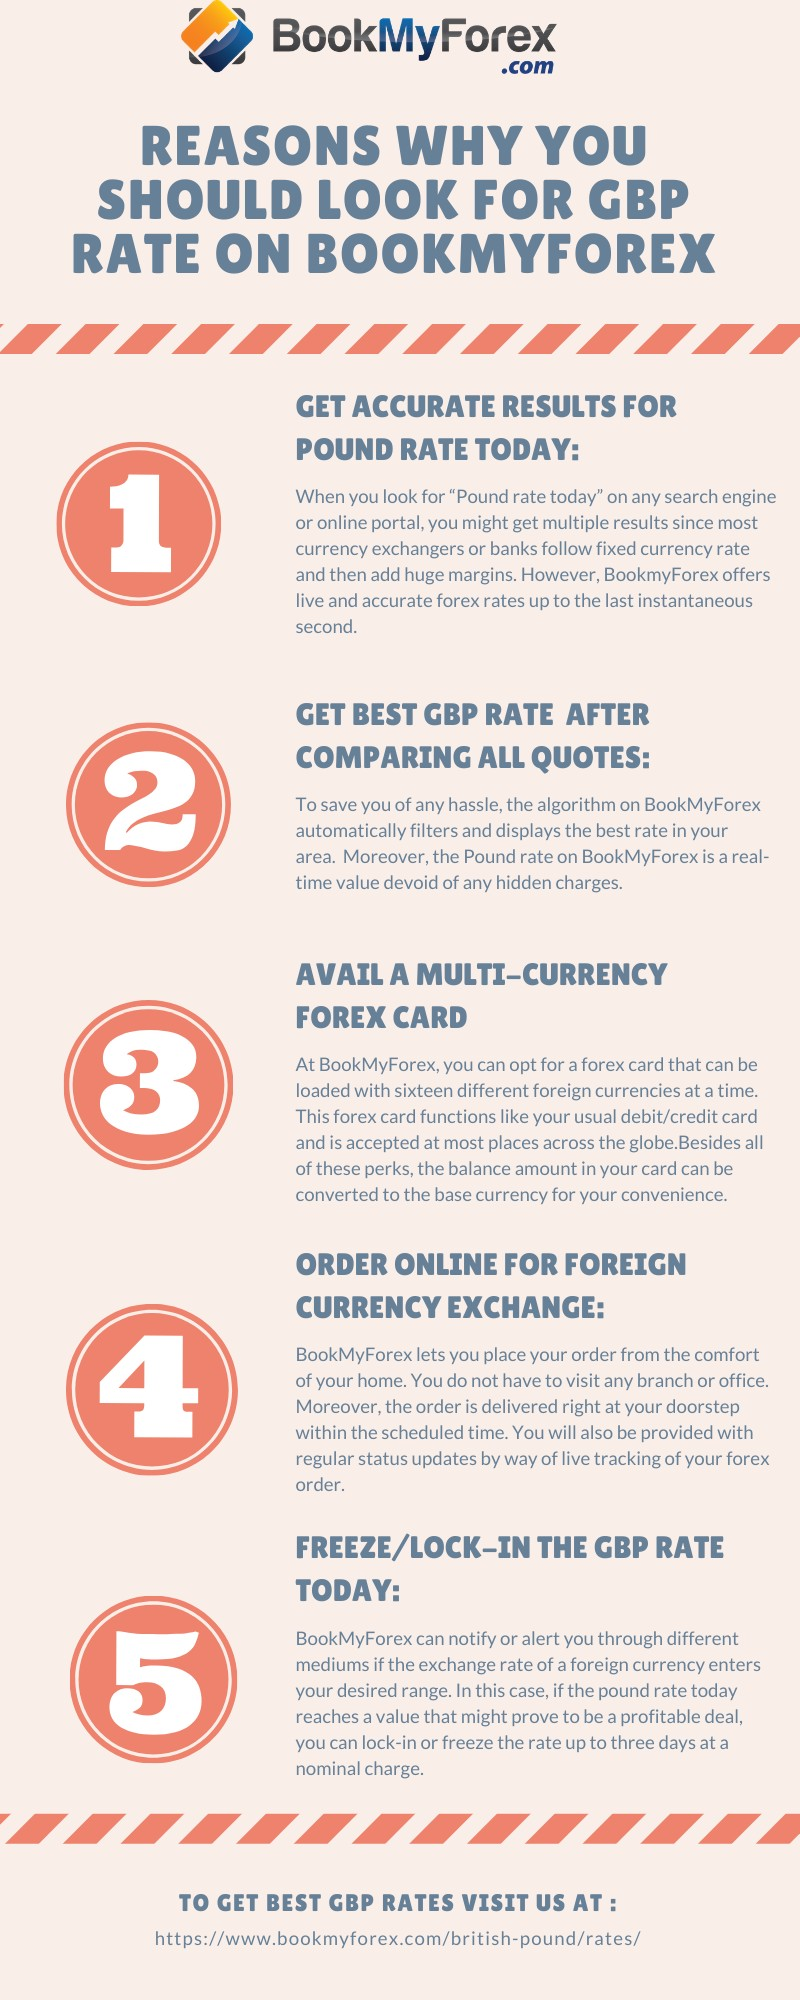 Reasons Why You Should Look For GBP Rate On BookMyForex